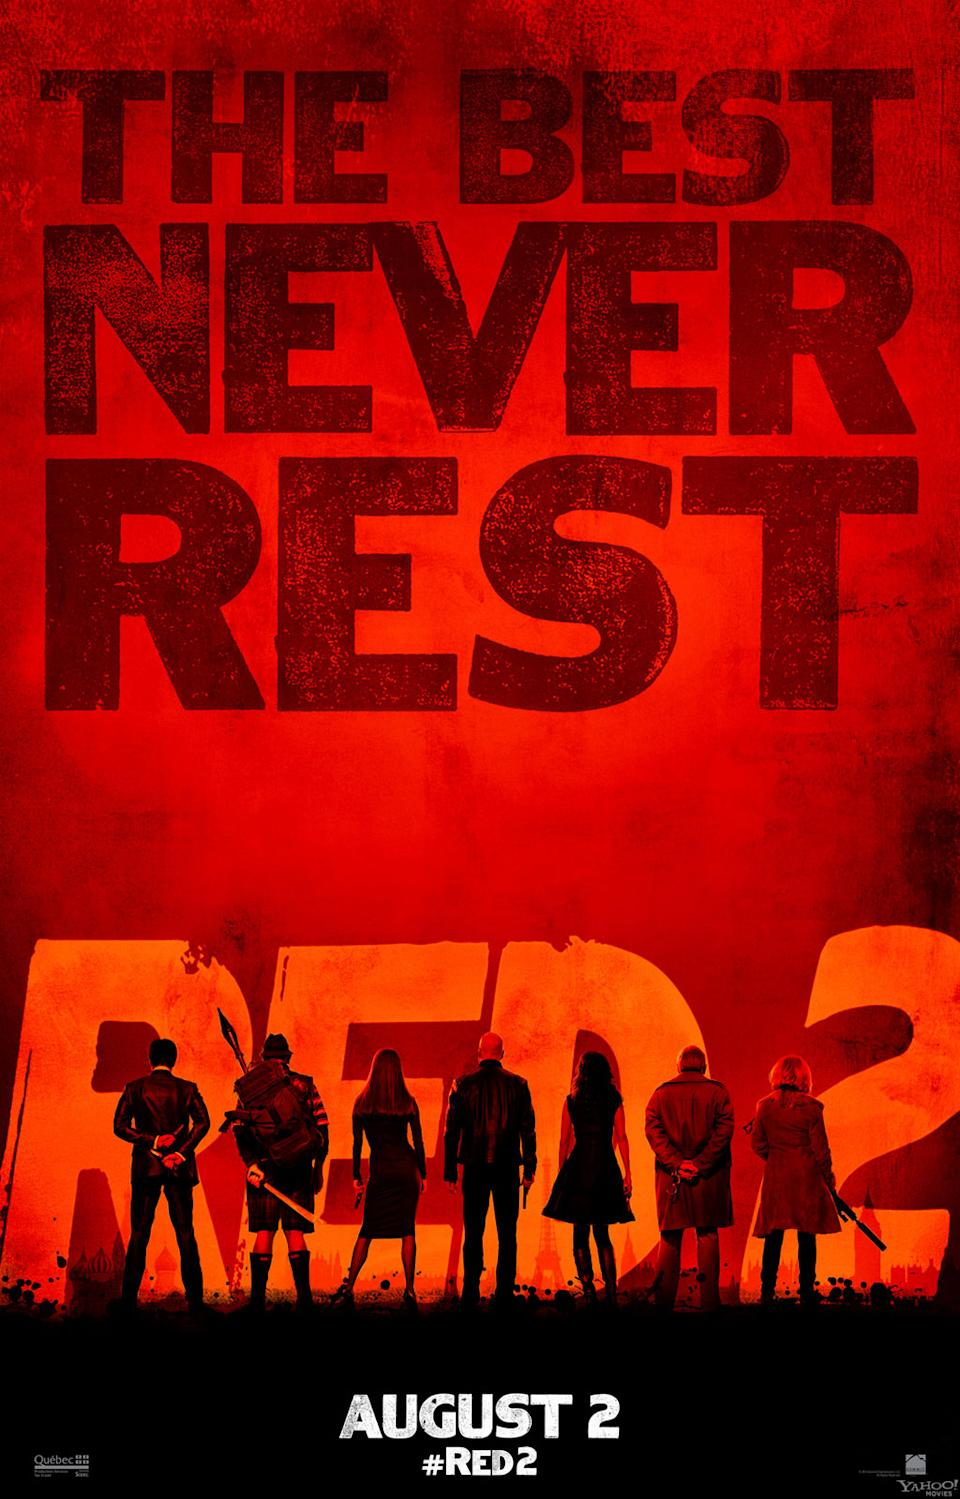 """""""The Best Never Rest"""" - Summit Entertainment's """"RED 2"""" - 2013<br><br> <a href=""""http://l.yimg.com/os/251/2013/02/11/Red2-finalteaser-fin5-theater-crop--jpg_172707.jpg"""" rel=""""nofollow noopener"""" target=""""_blank"""" data-ylk=""""slk:View full size >>"""" class=""""link rapid-noclick-resp"""">View full size >></a>"""